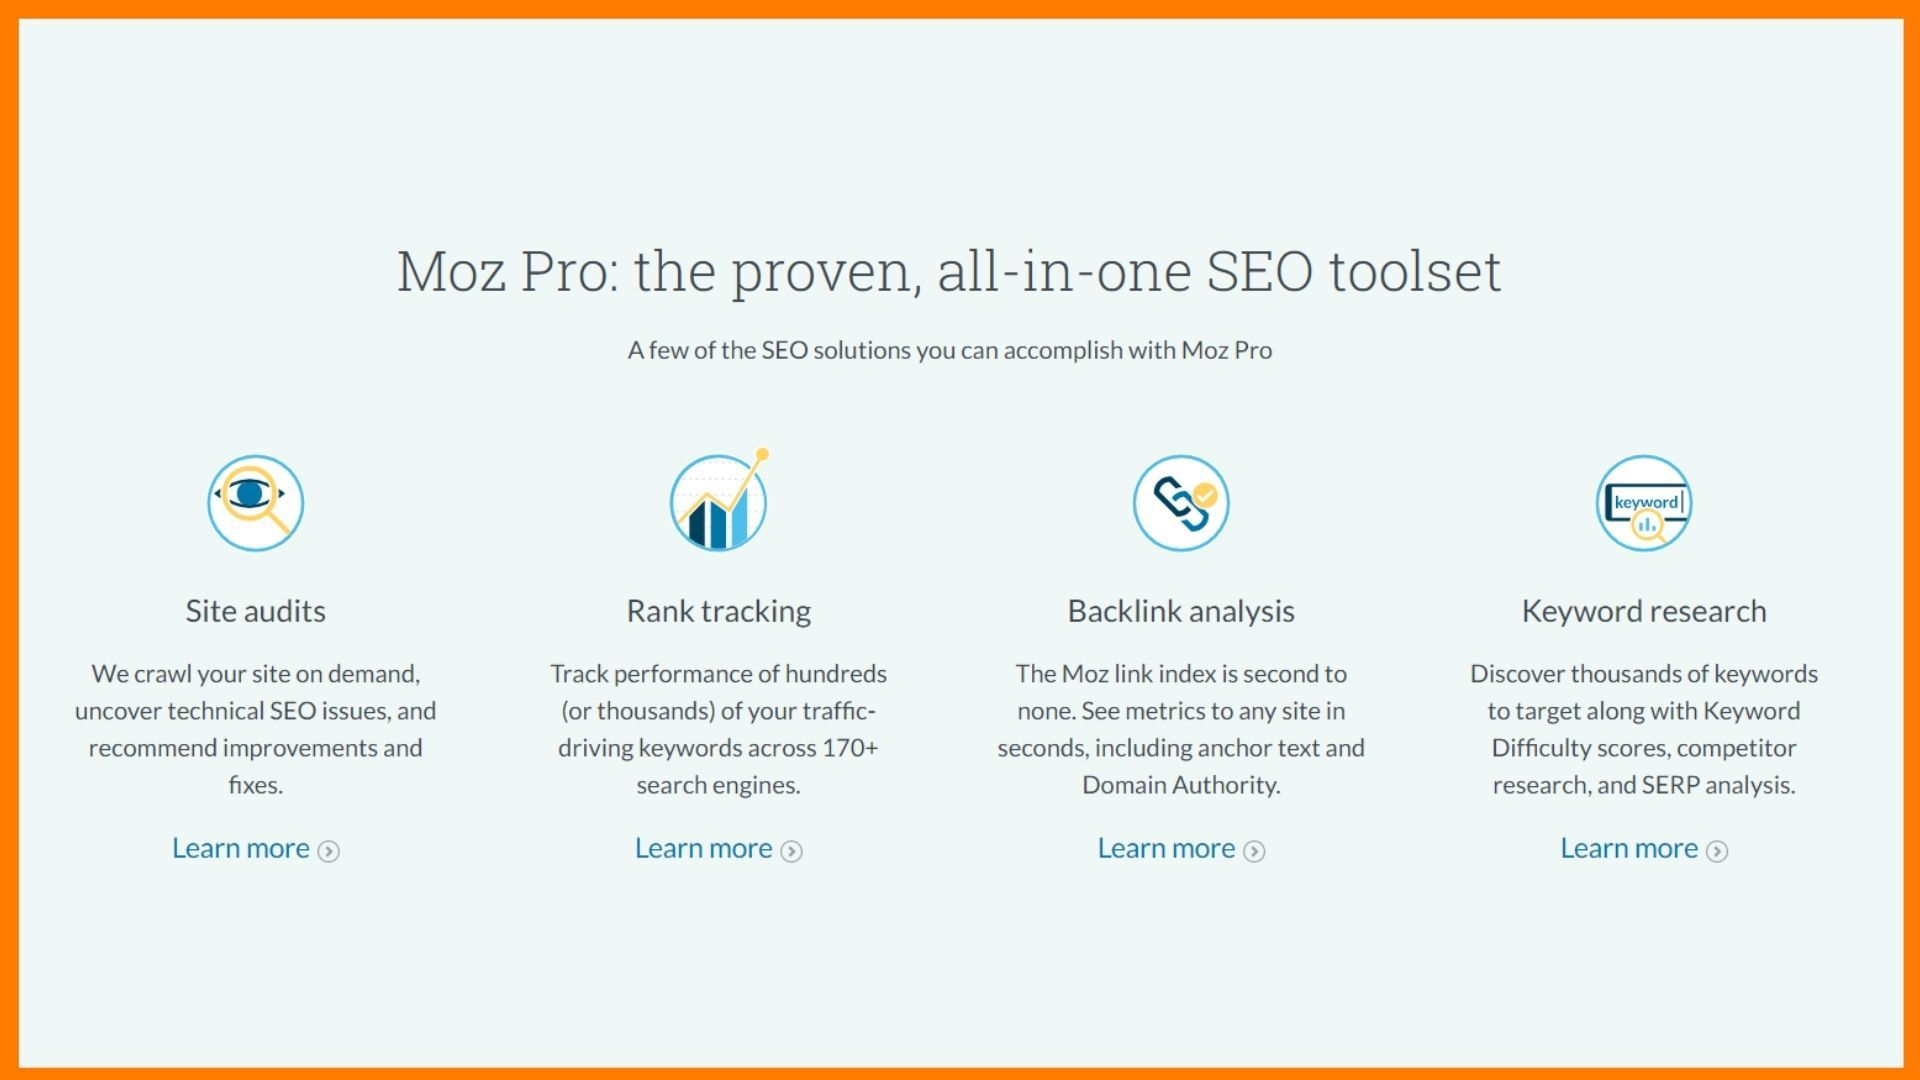 Moz Pro: SEO Software